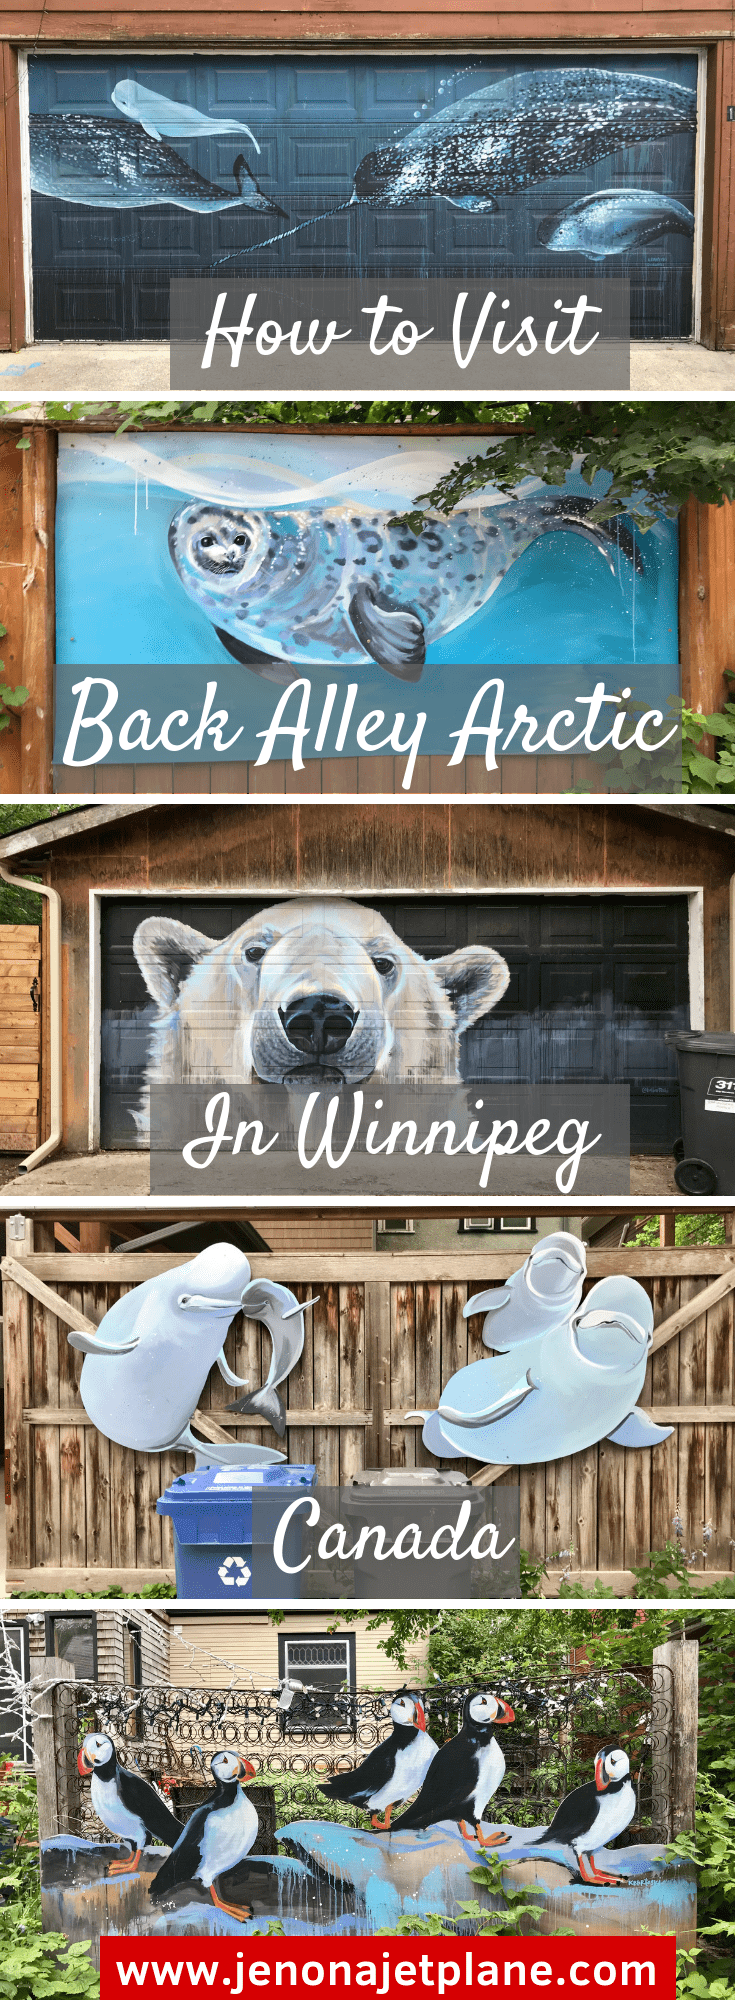 This street art installation is unlike any other, painted on garage doors and raising awareness about climate change. Learn all about Back Alley Arctic in Winnipeg, Canada! #Winnipeg #streetart #Arctic #climatechange #graffitiart